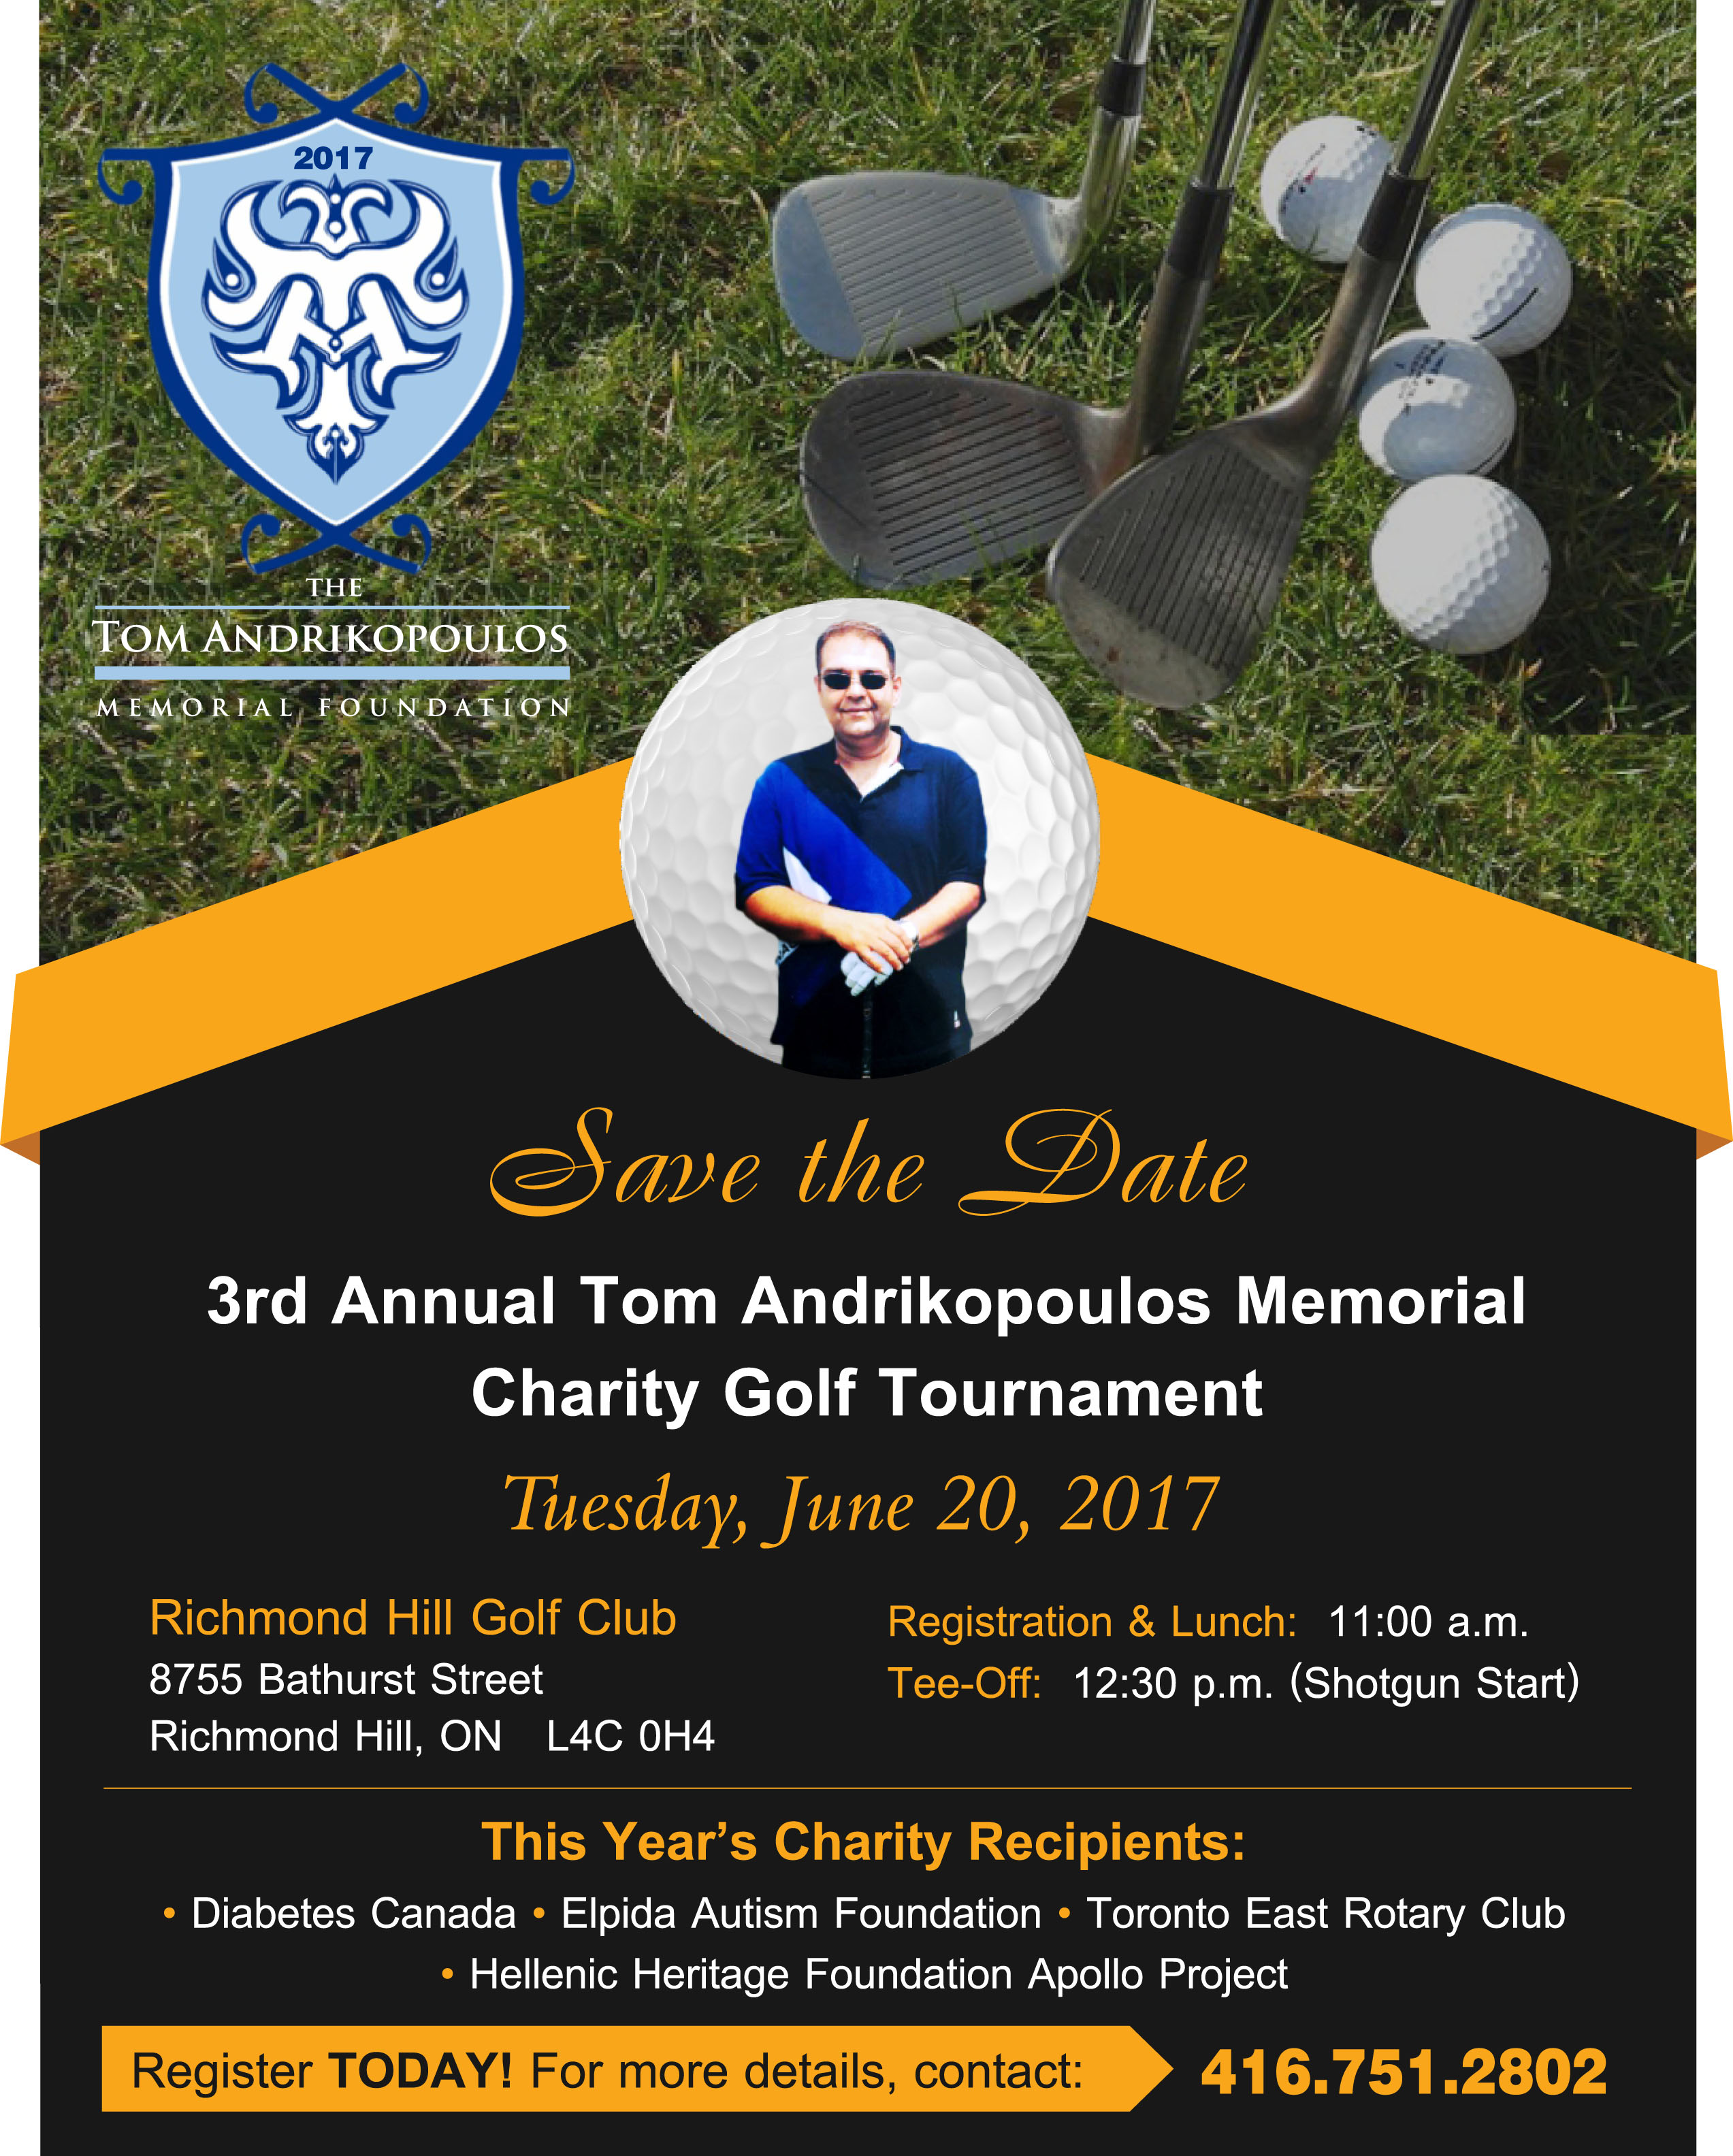 Tom Andrikopoulos 3rd Annual Memorial Charity Golf Tournament